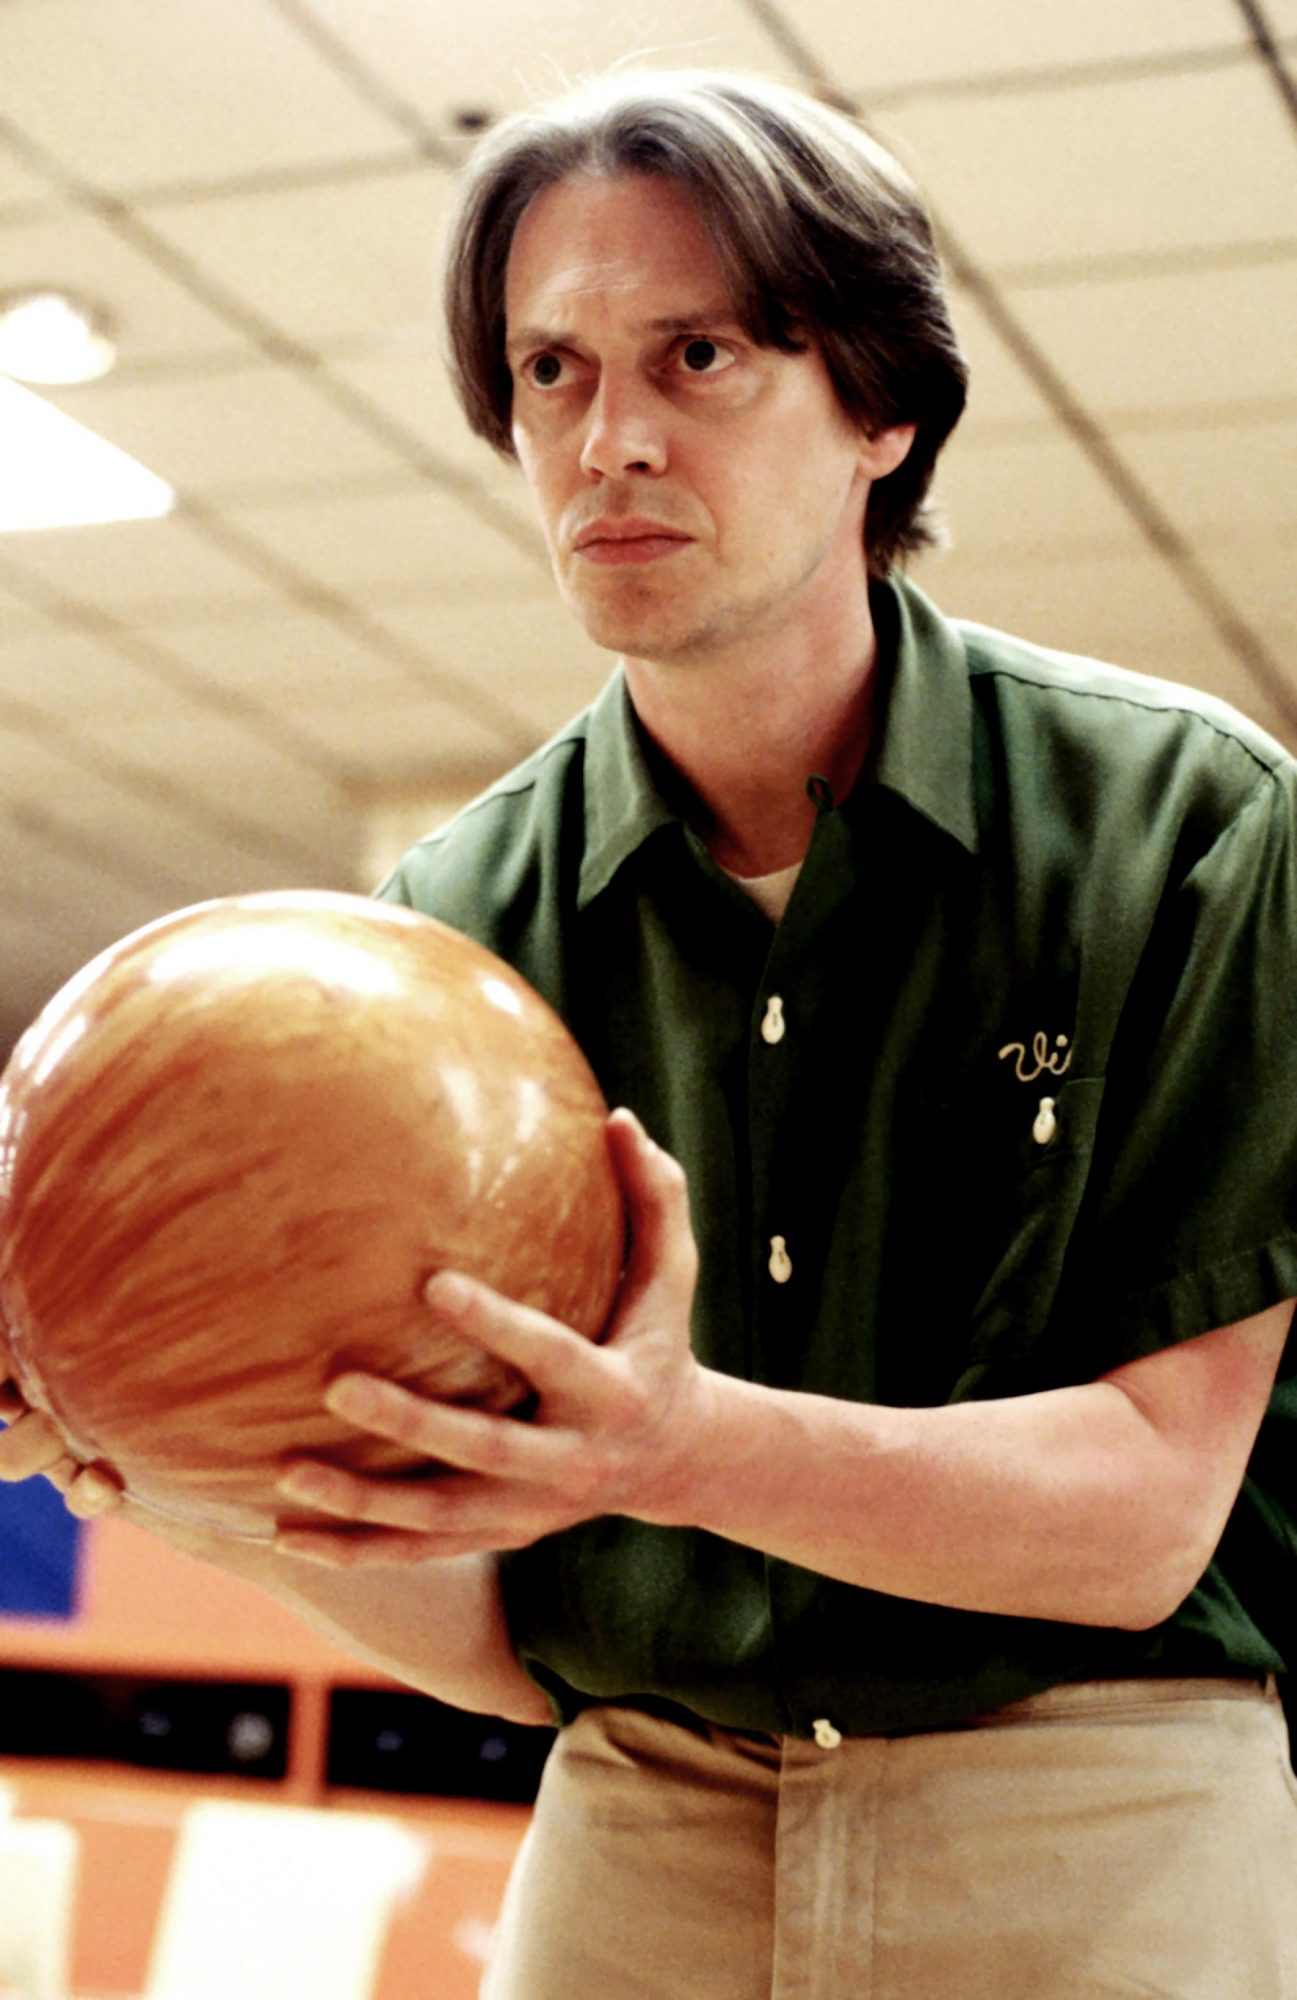 THE BIG LEBOWSKI, Steve Buscemi, 1998, (c) Gramercy Pictures/courtesy Everett Collection